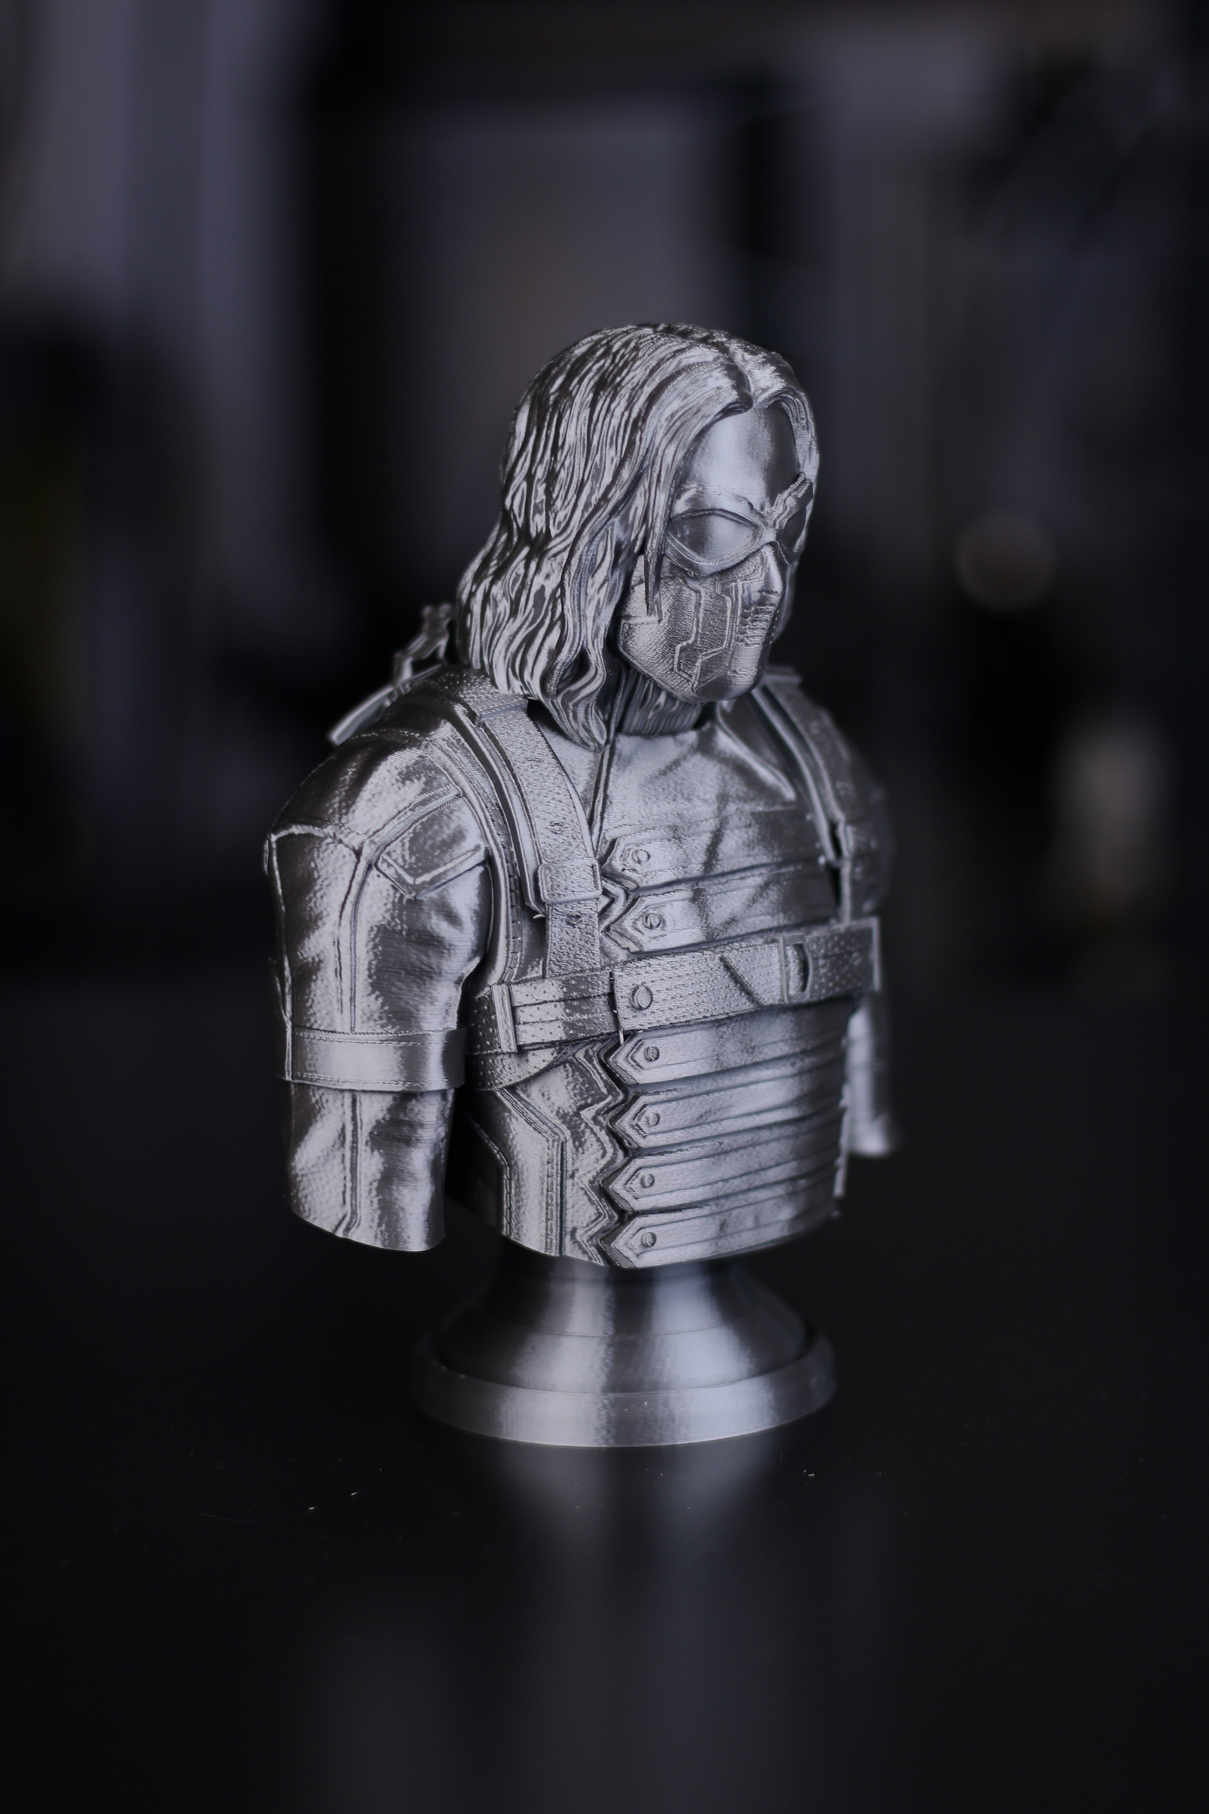 Masked-Winter-Soldier-from-Fotis-Mint-on-Creality-Sermoon-D1-9